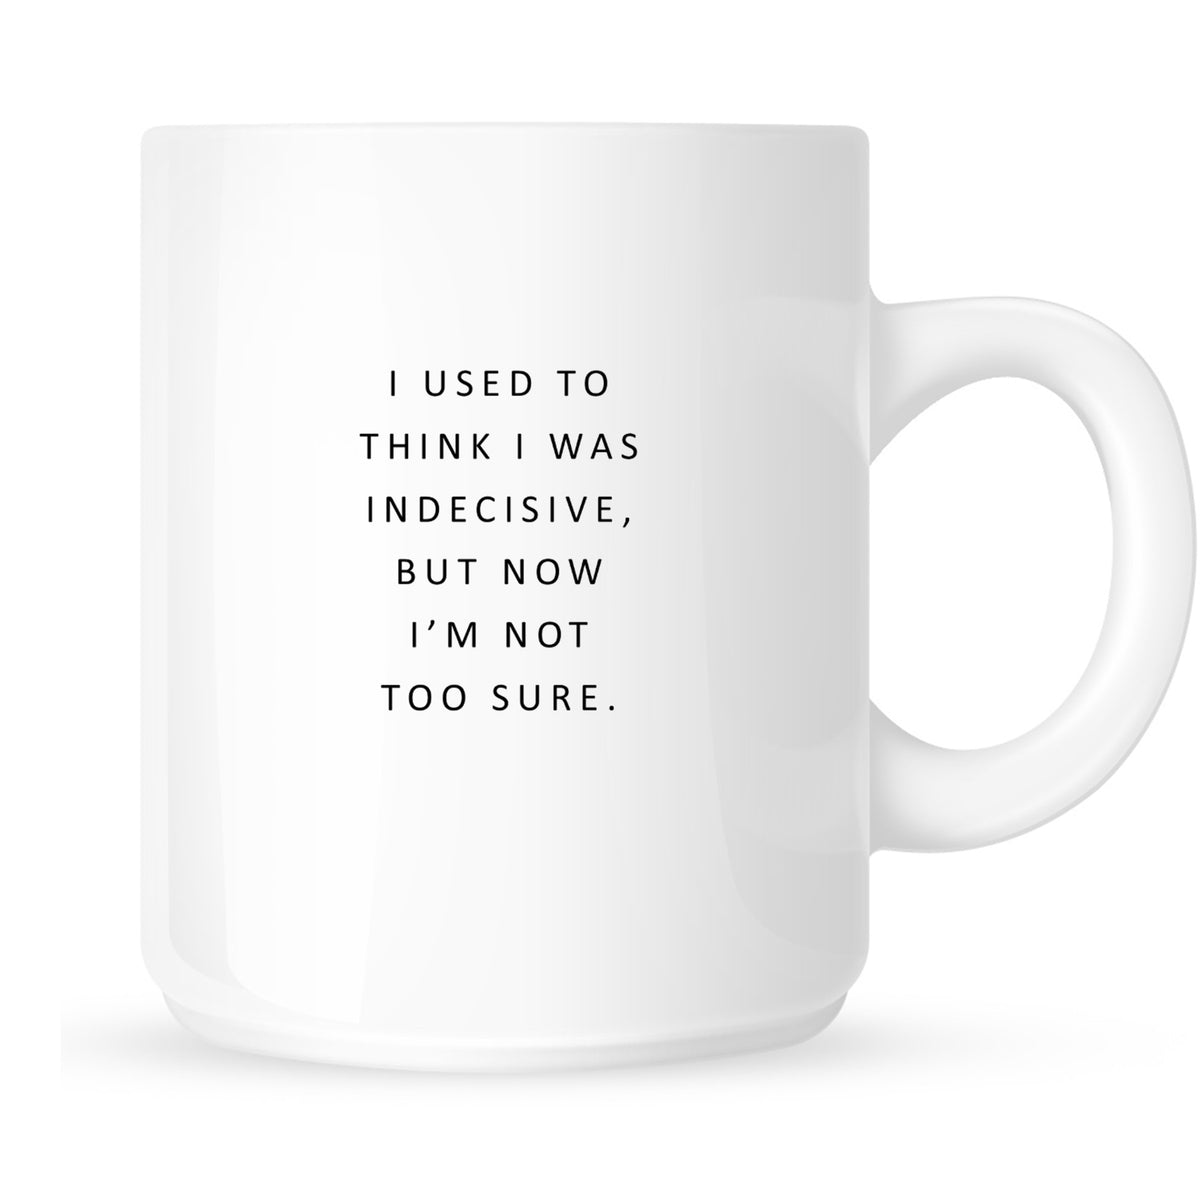 Mug - I Used to Think I Was Indecisive, But Now I'm Not Too Sure